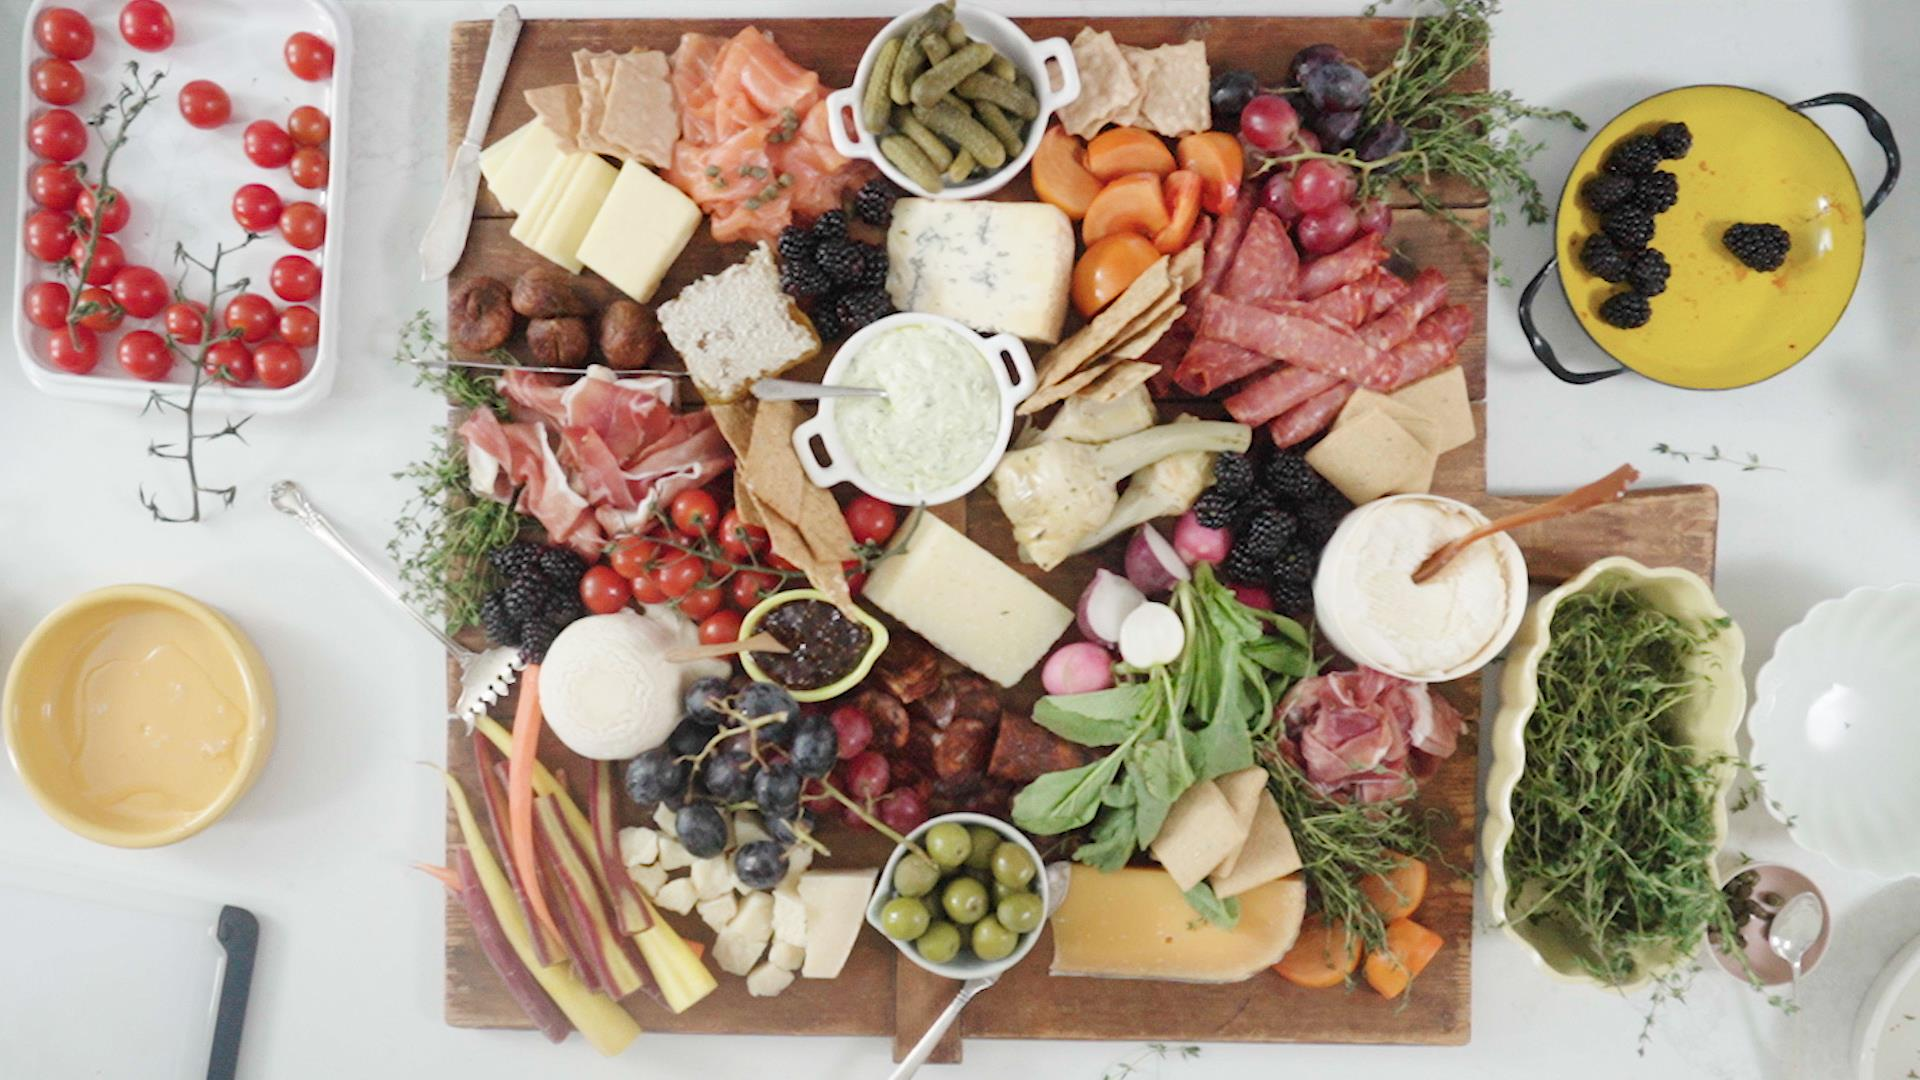 The only appetizer you need: A better way to do a meat and cheese board